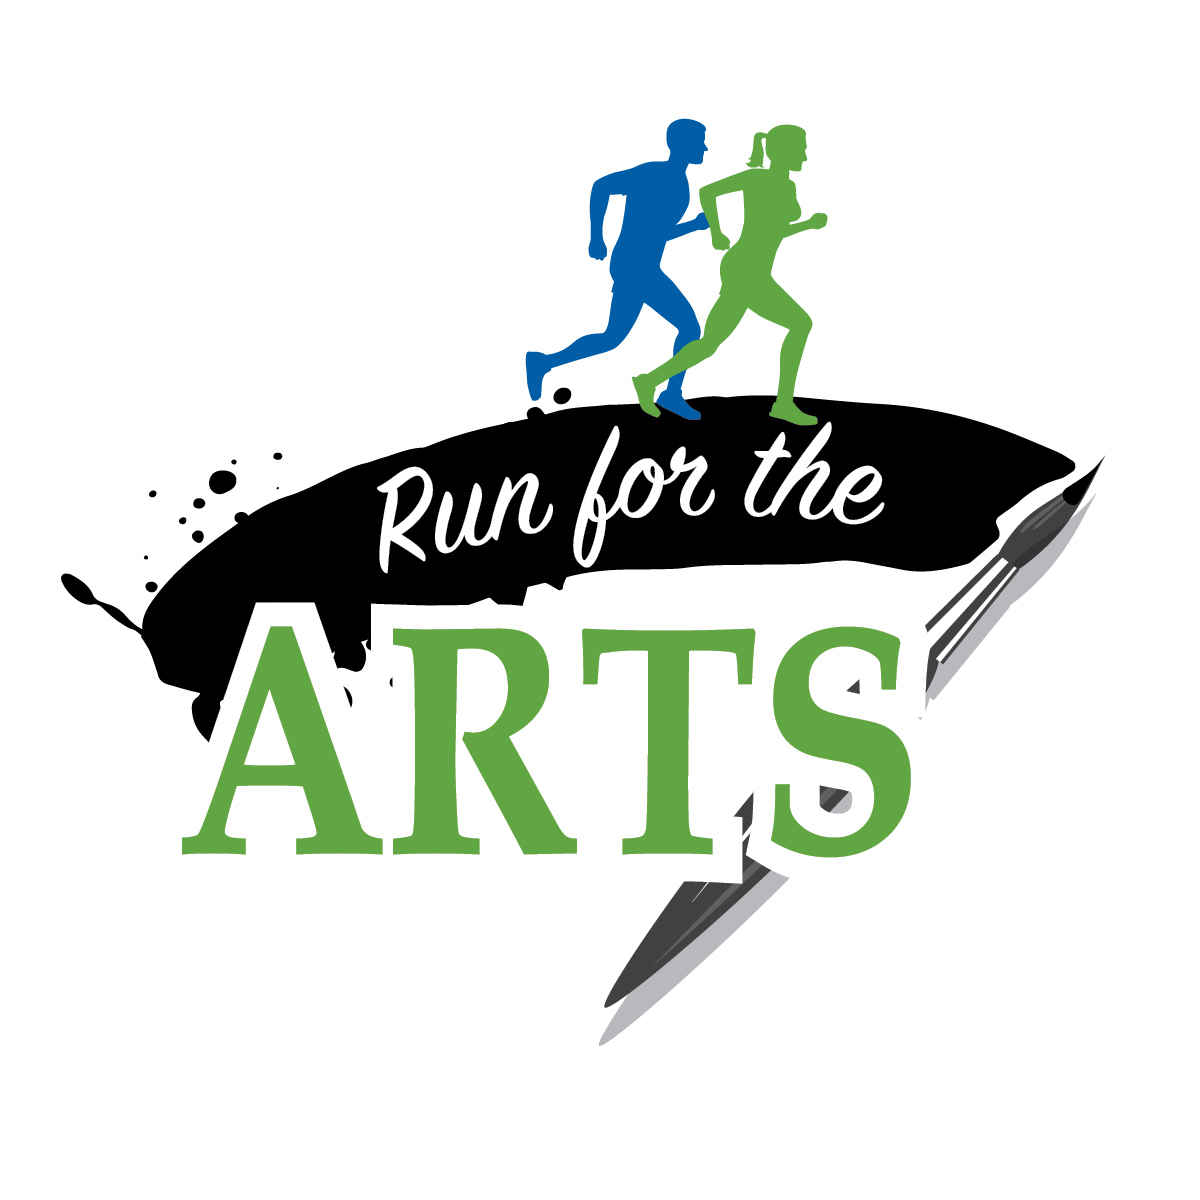 An Afternoon of Arts in the Park and Run for the Arts image